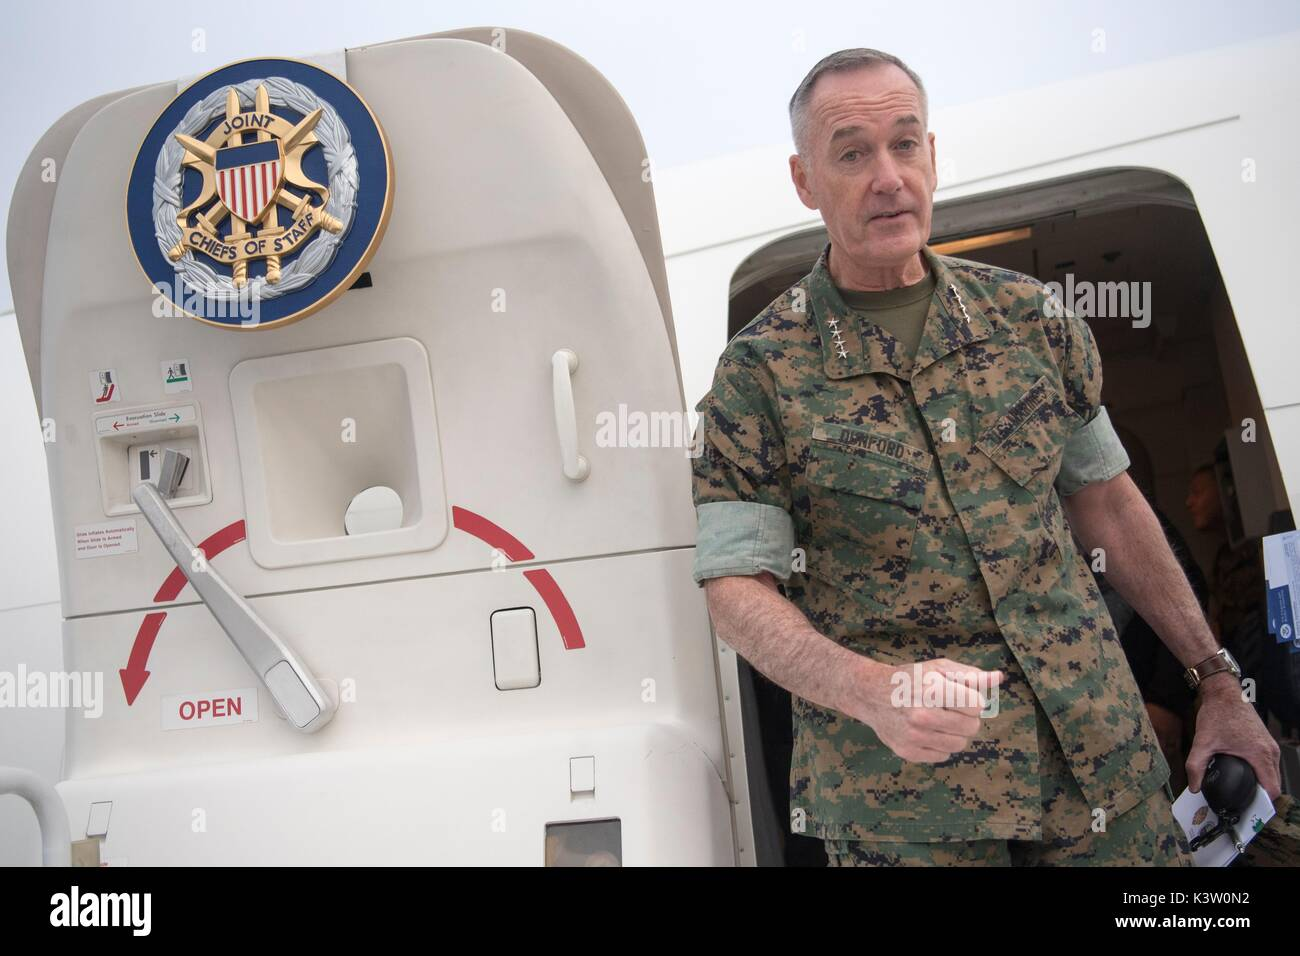 Fort greely stock photos fort greely stock images alamy for Chair joint chiefs of staff